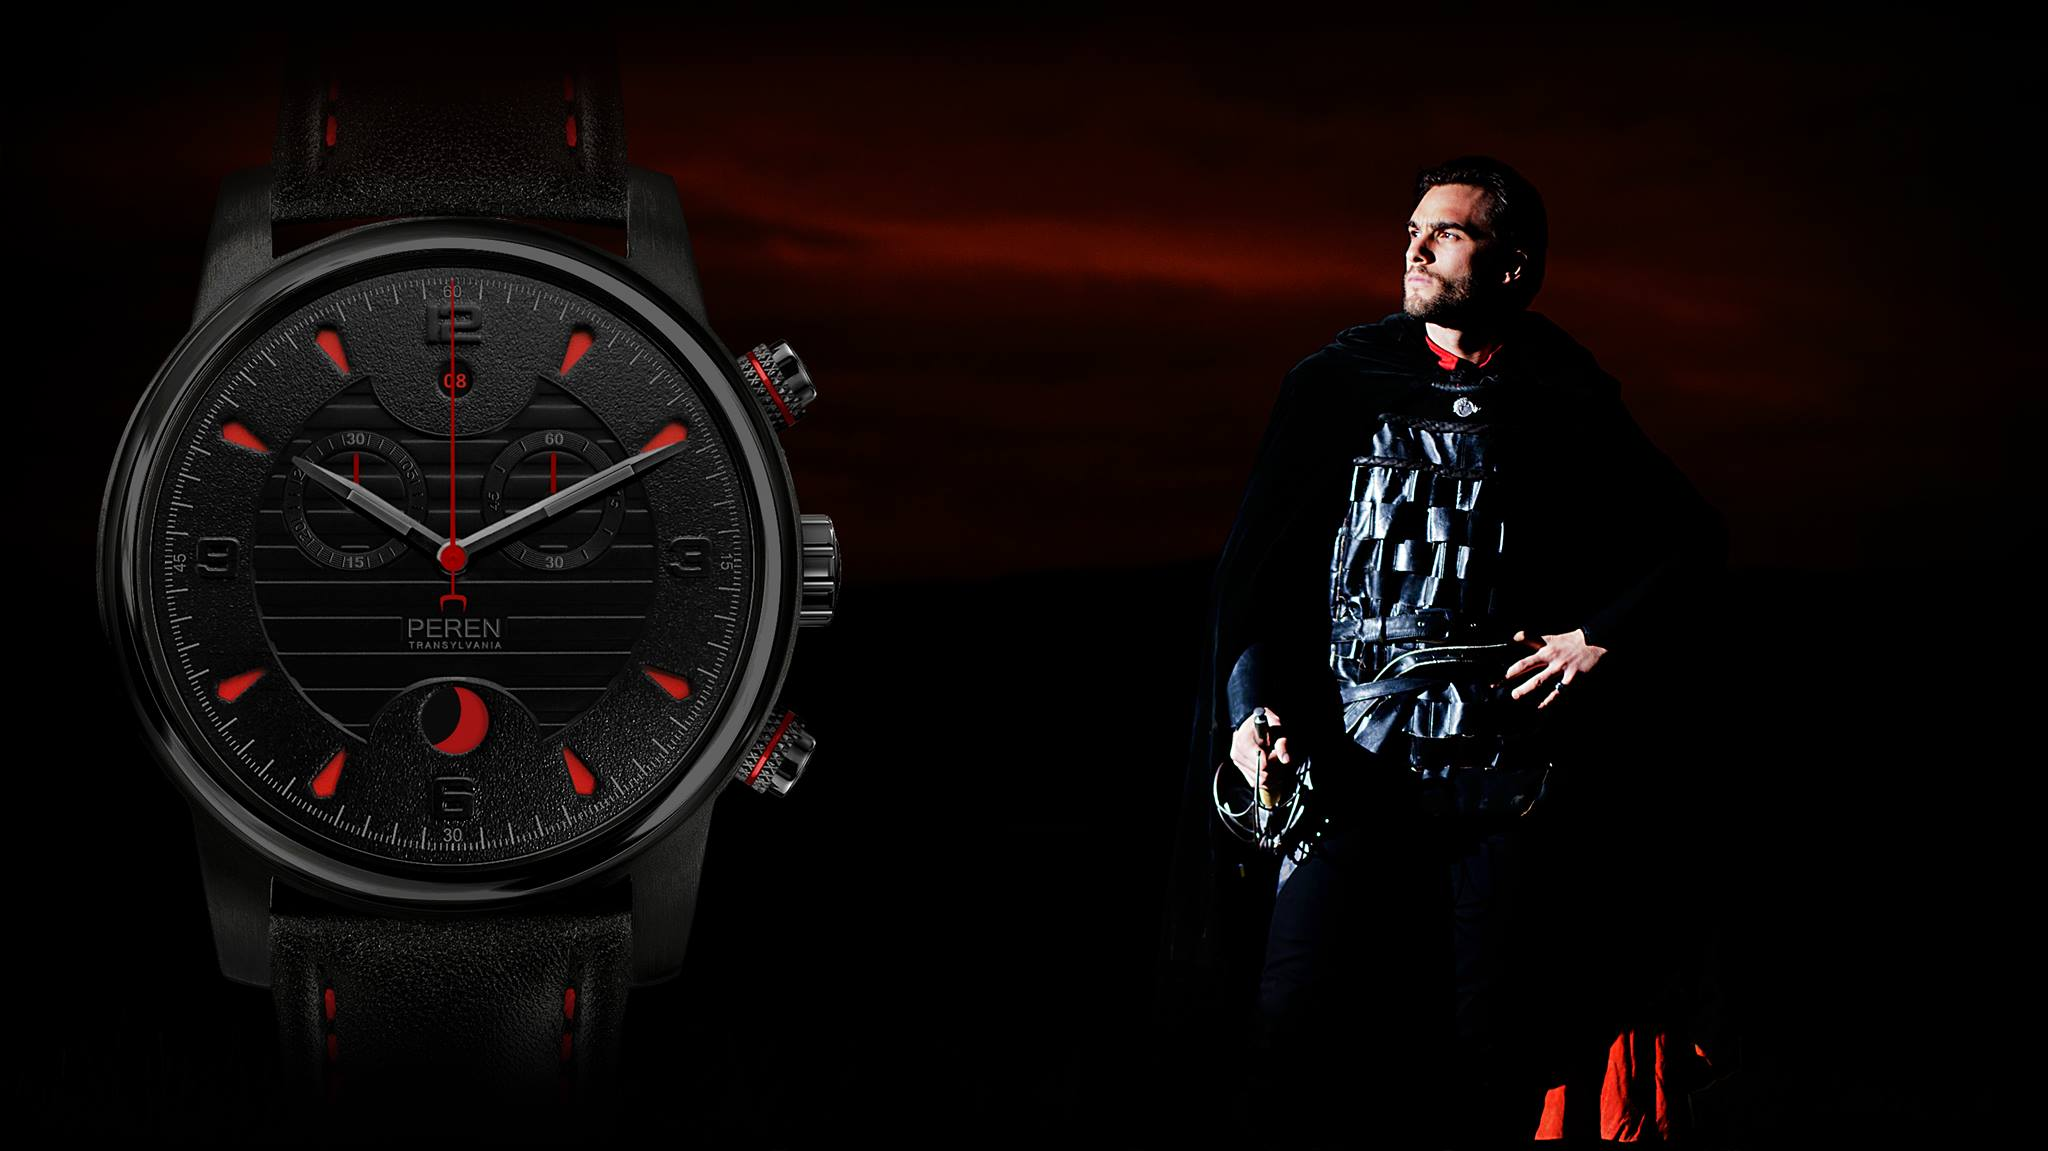 Peren watches elvetia son of the dragon andy bica ceasuri elvetiene romania